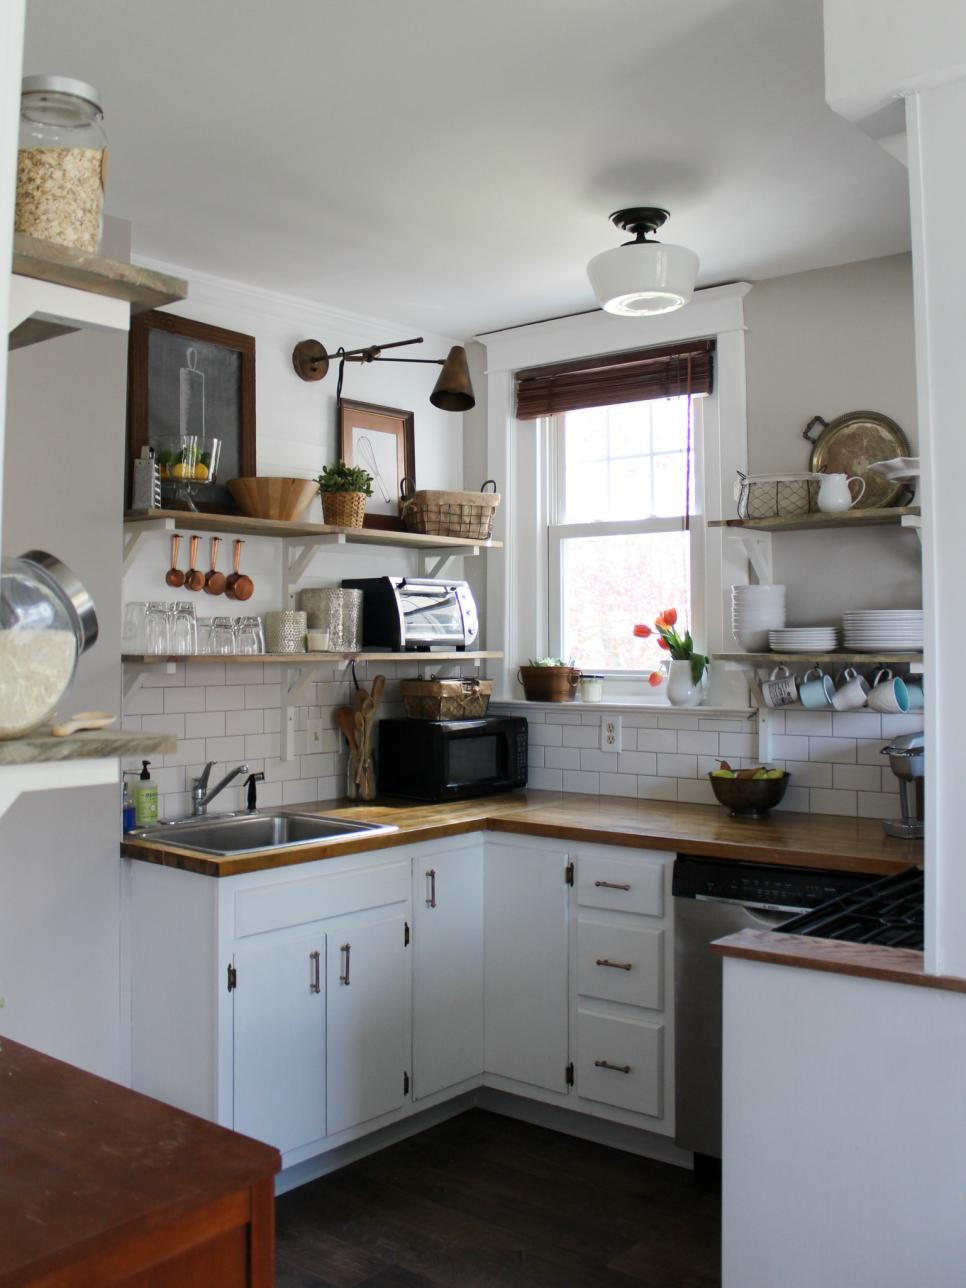 Before and after kitchen remodels on a budget hgtv for Kitchen renovation